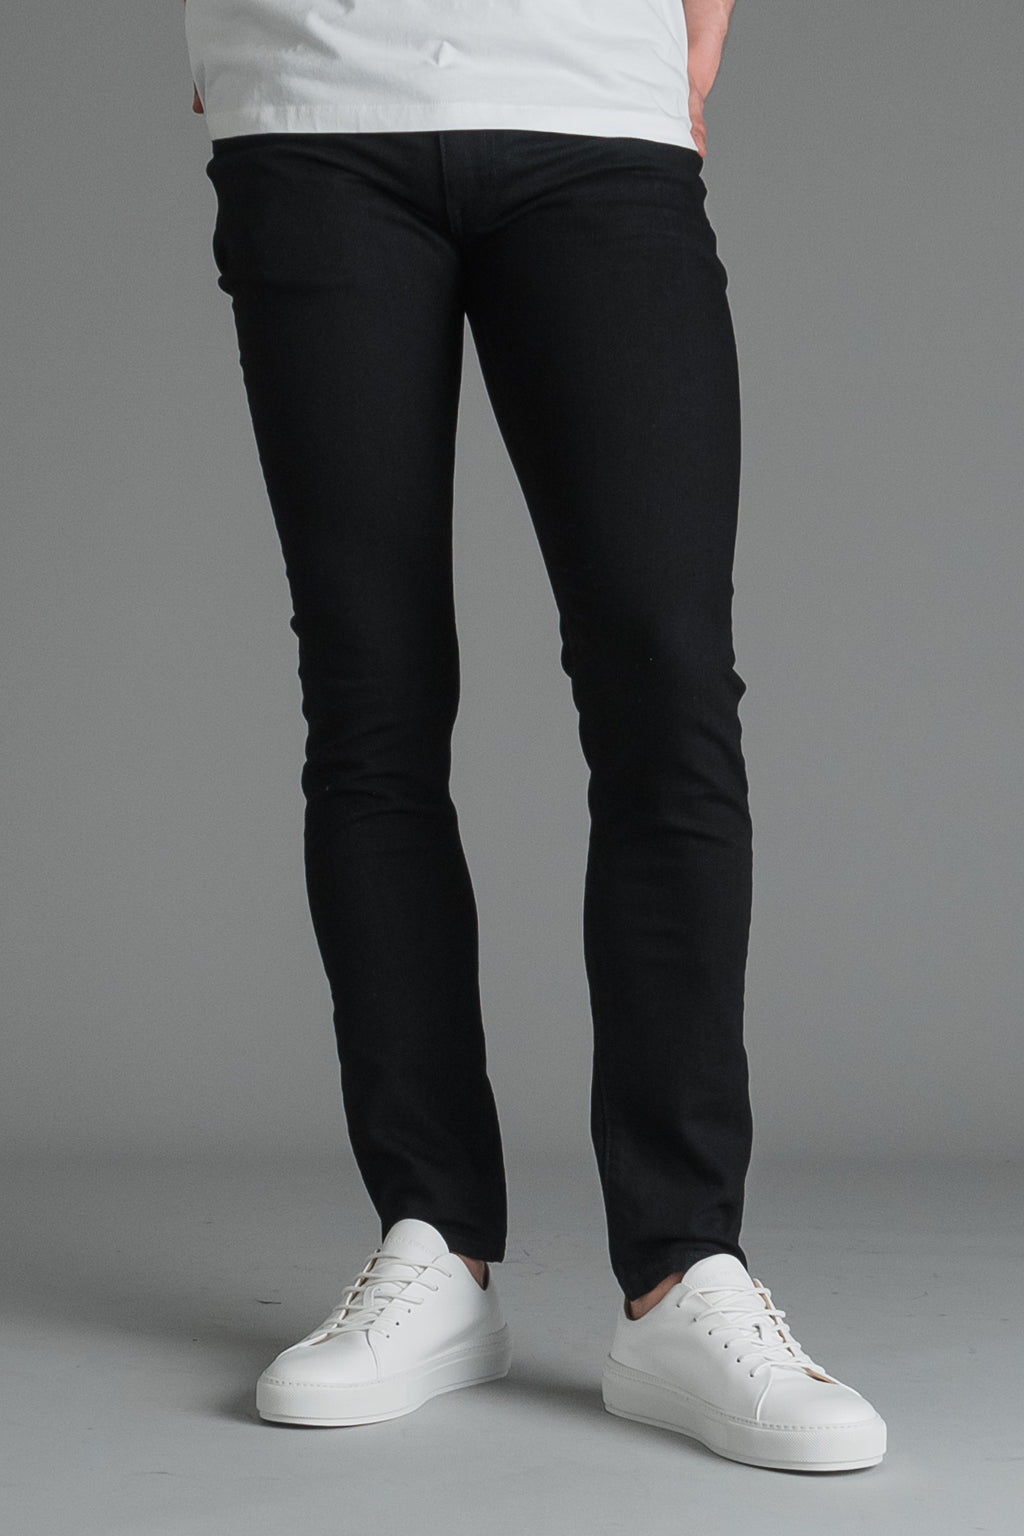 Levi's 519 Extreme Skinny fit miesten farkut - Cleaner black